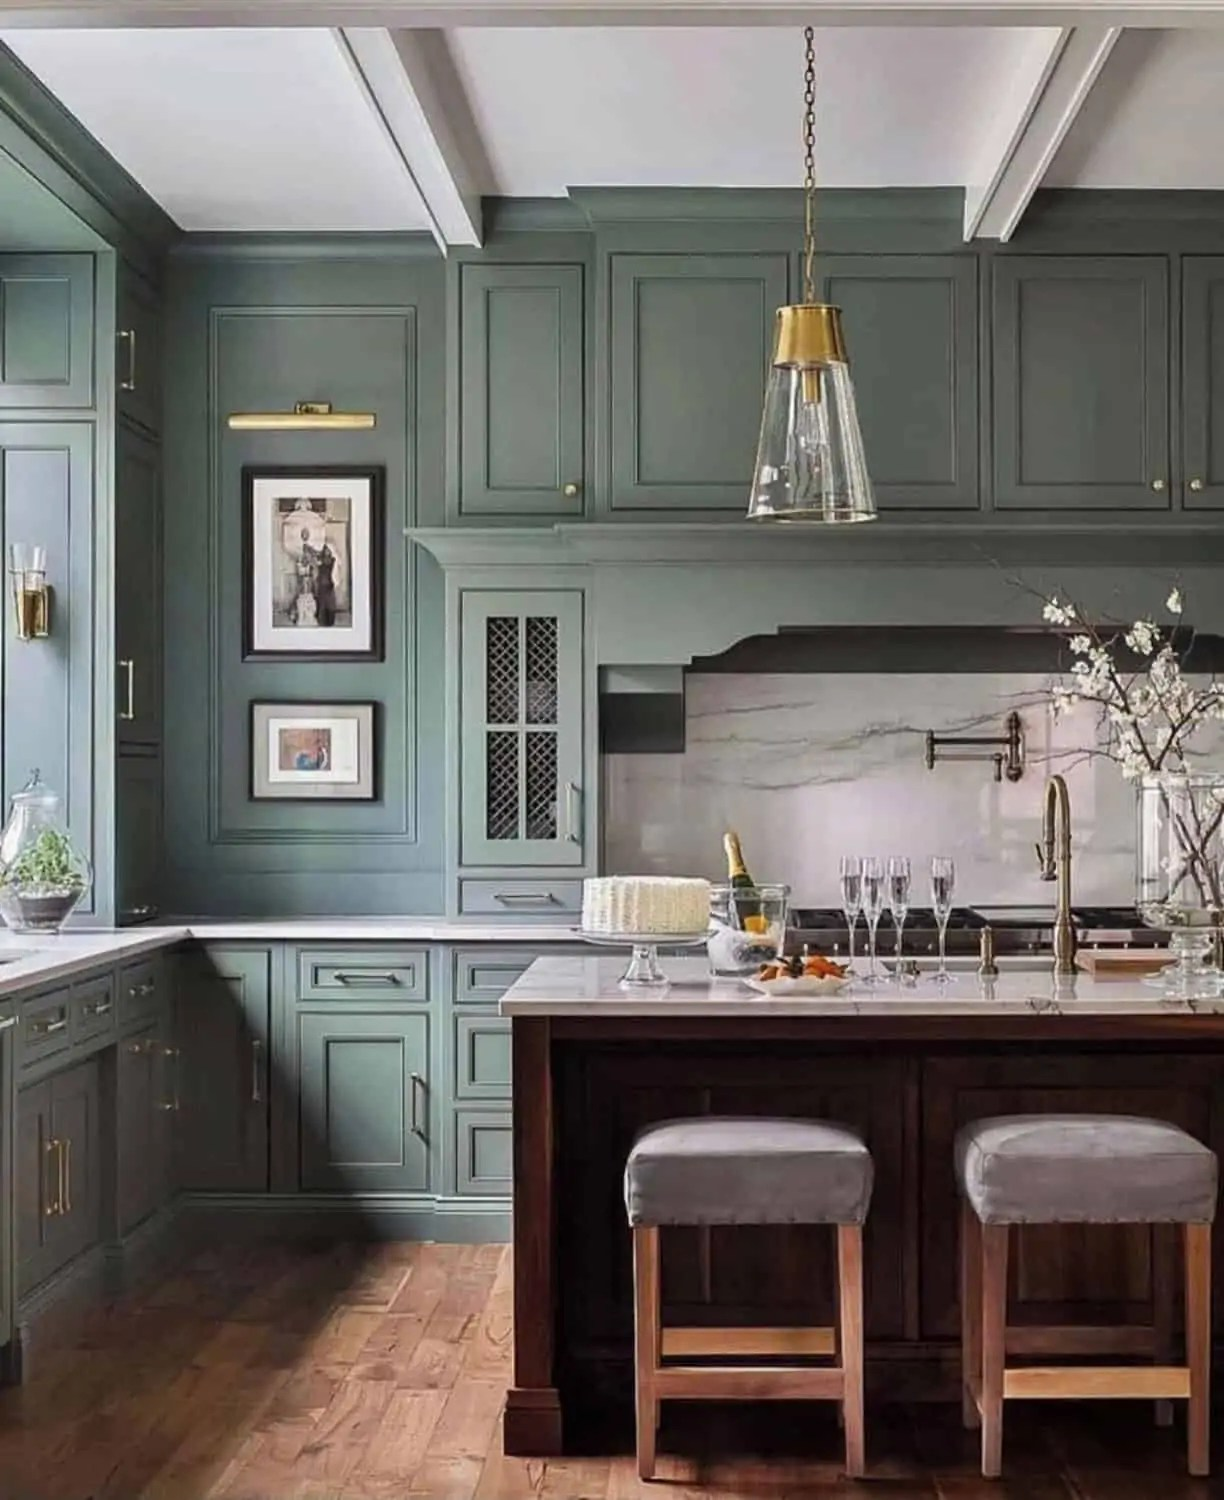 green cabinets with Circa lighting brass sconce